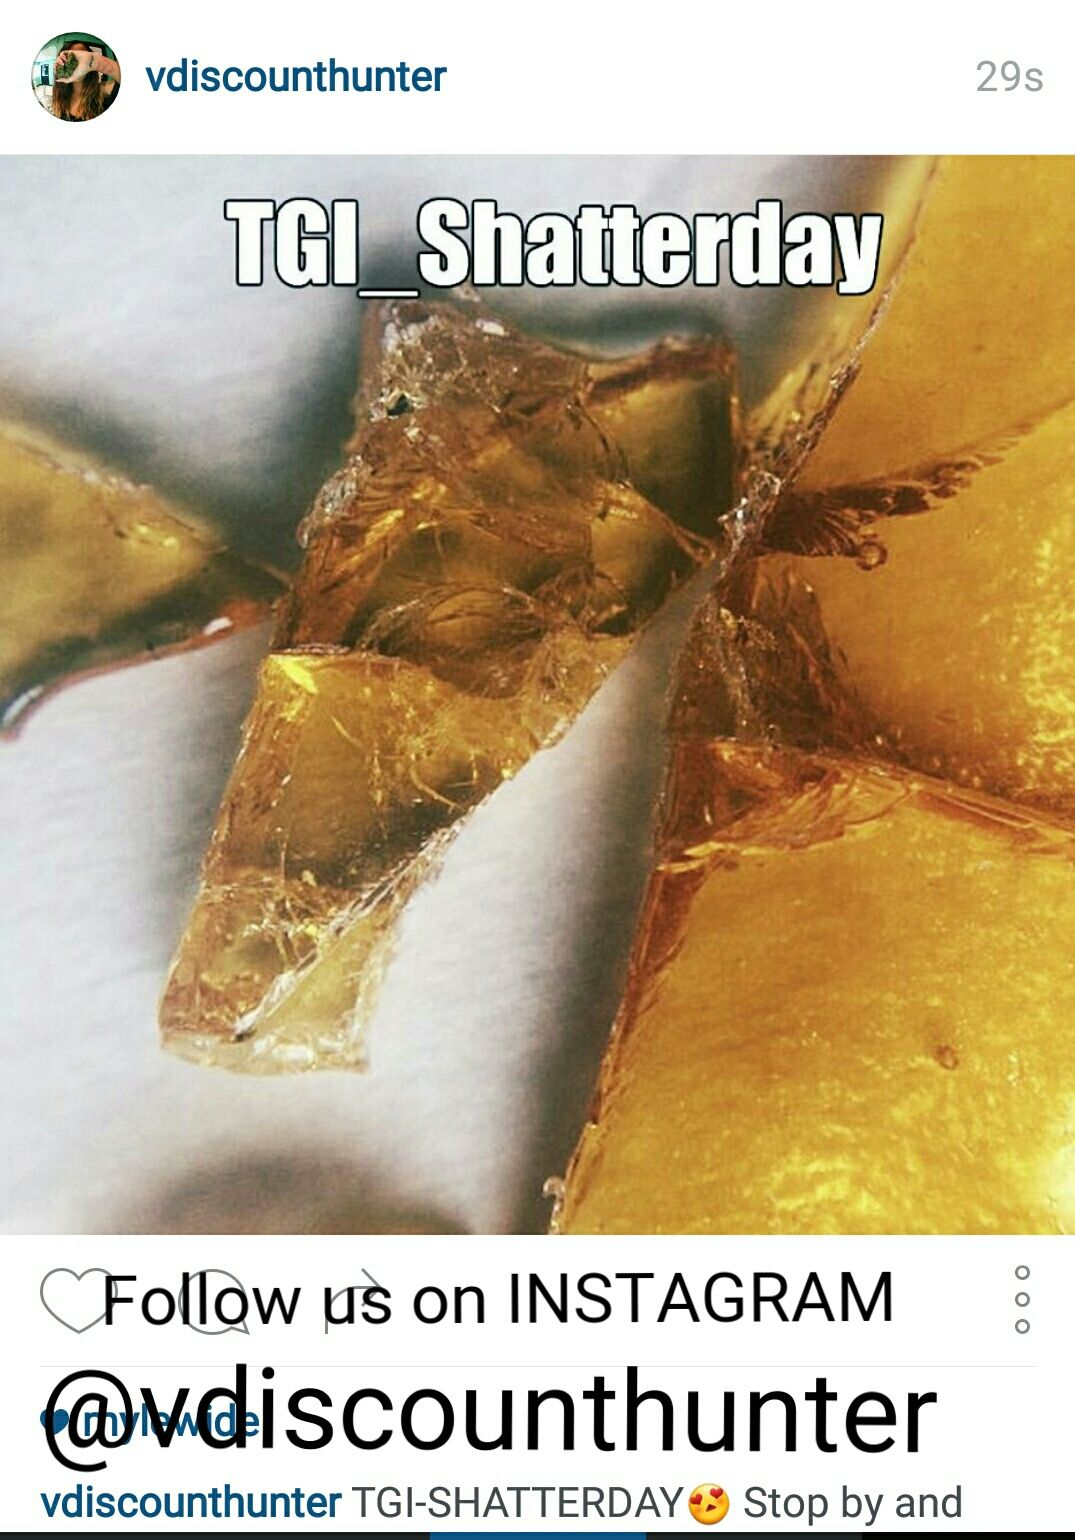 Happy Shatterday!!!!! 10% off all shatters! Follow us on Instagram! 10% off all wax, all day today! We are open til 1 am